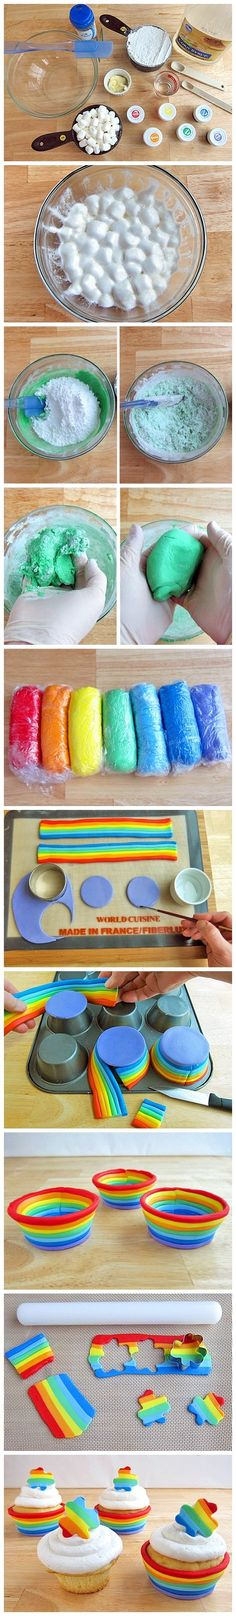 Rainbow Edible cupcake wrappers!